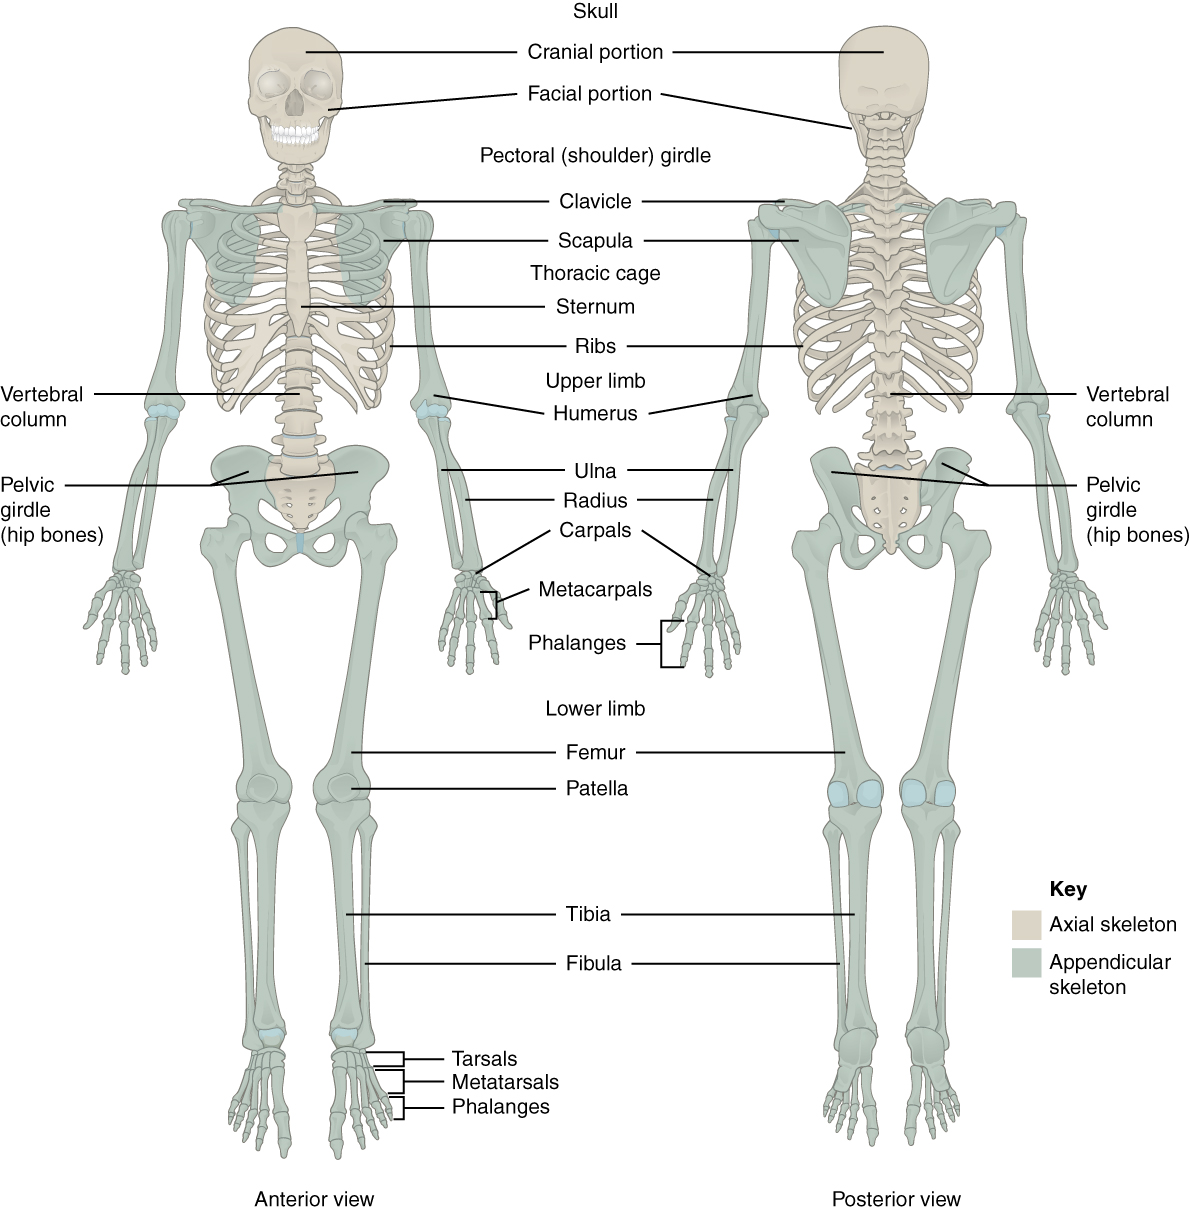 801_Appendicular_Skeleton introduction to the appendicular skeleton anatomy and physiology